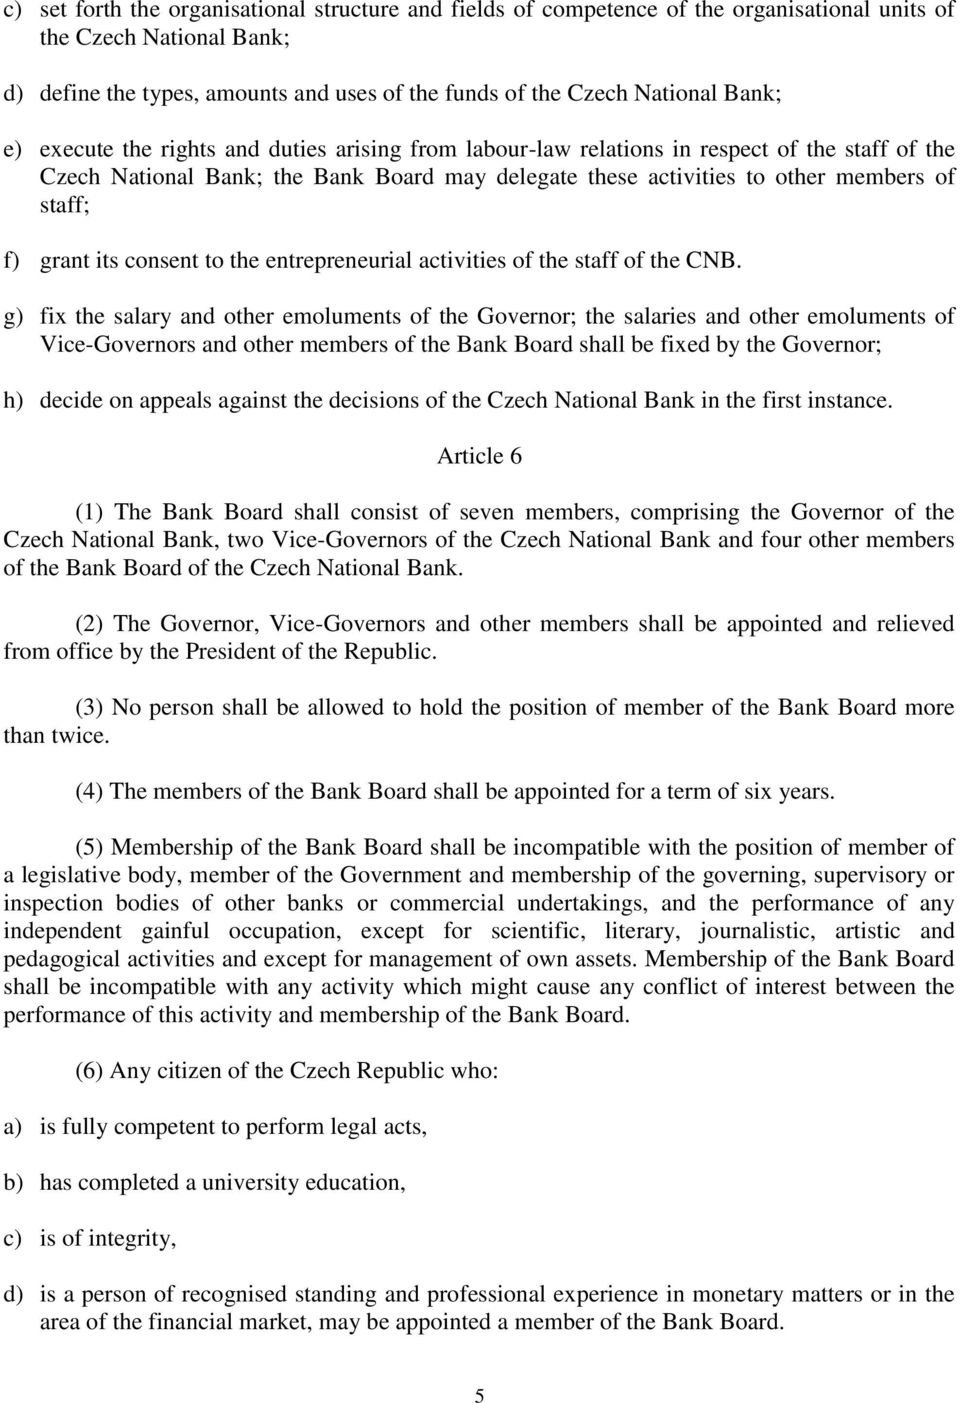 grant its consent to the entrepreneurial activities of the staff of the CNB.